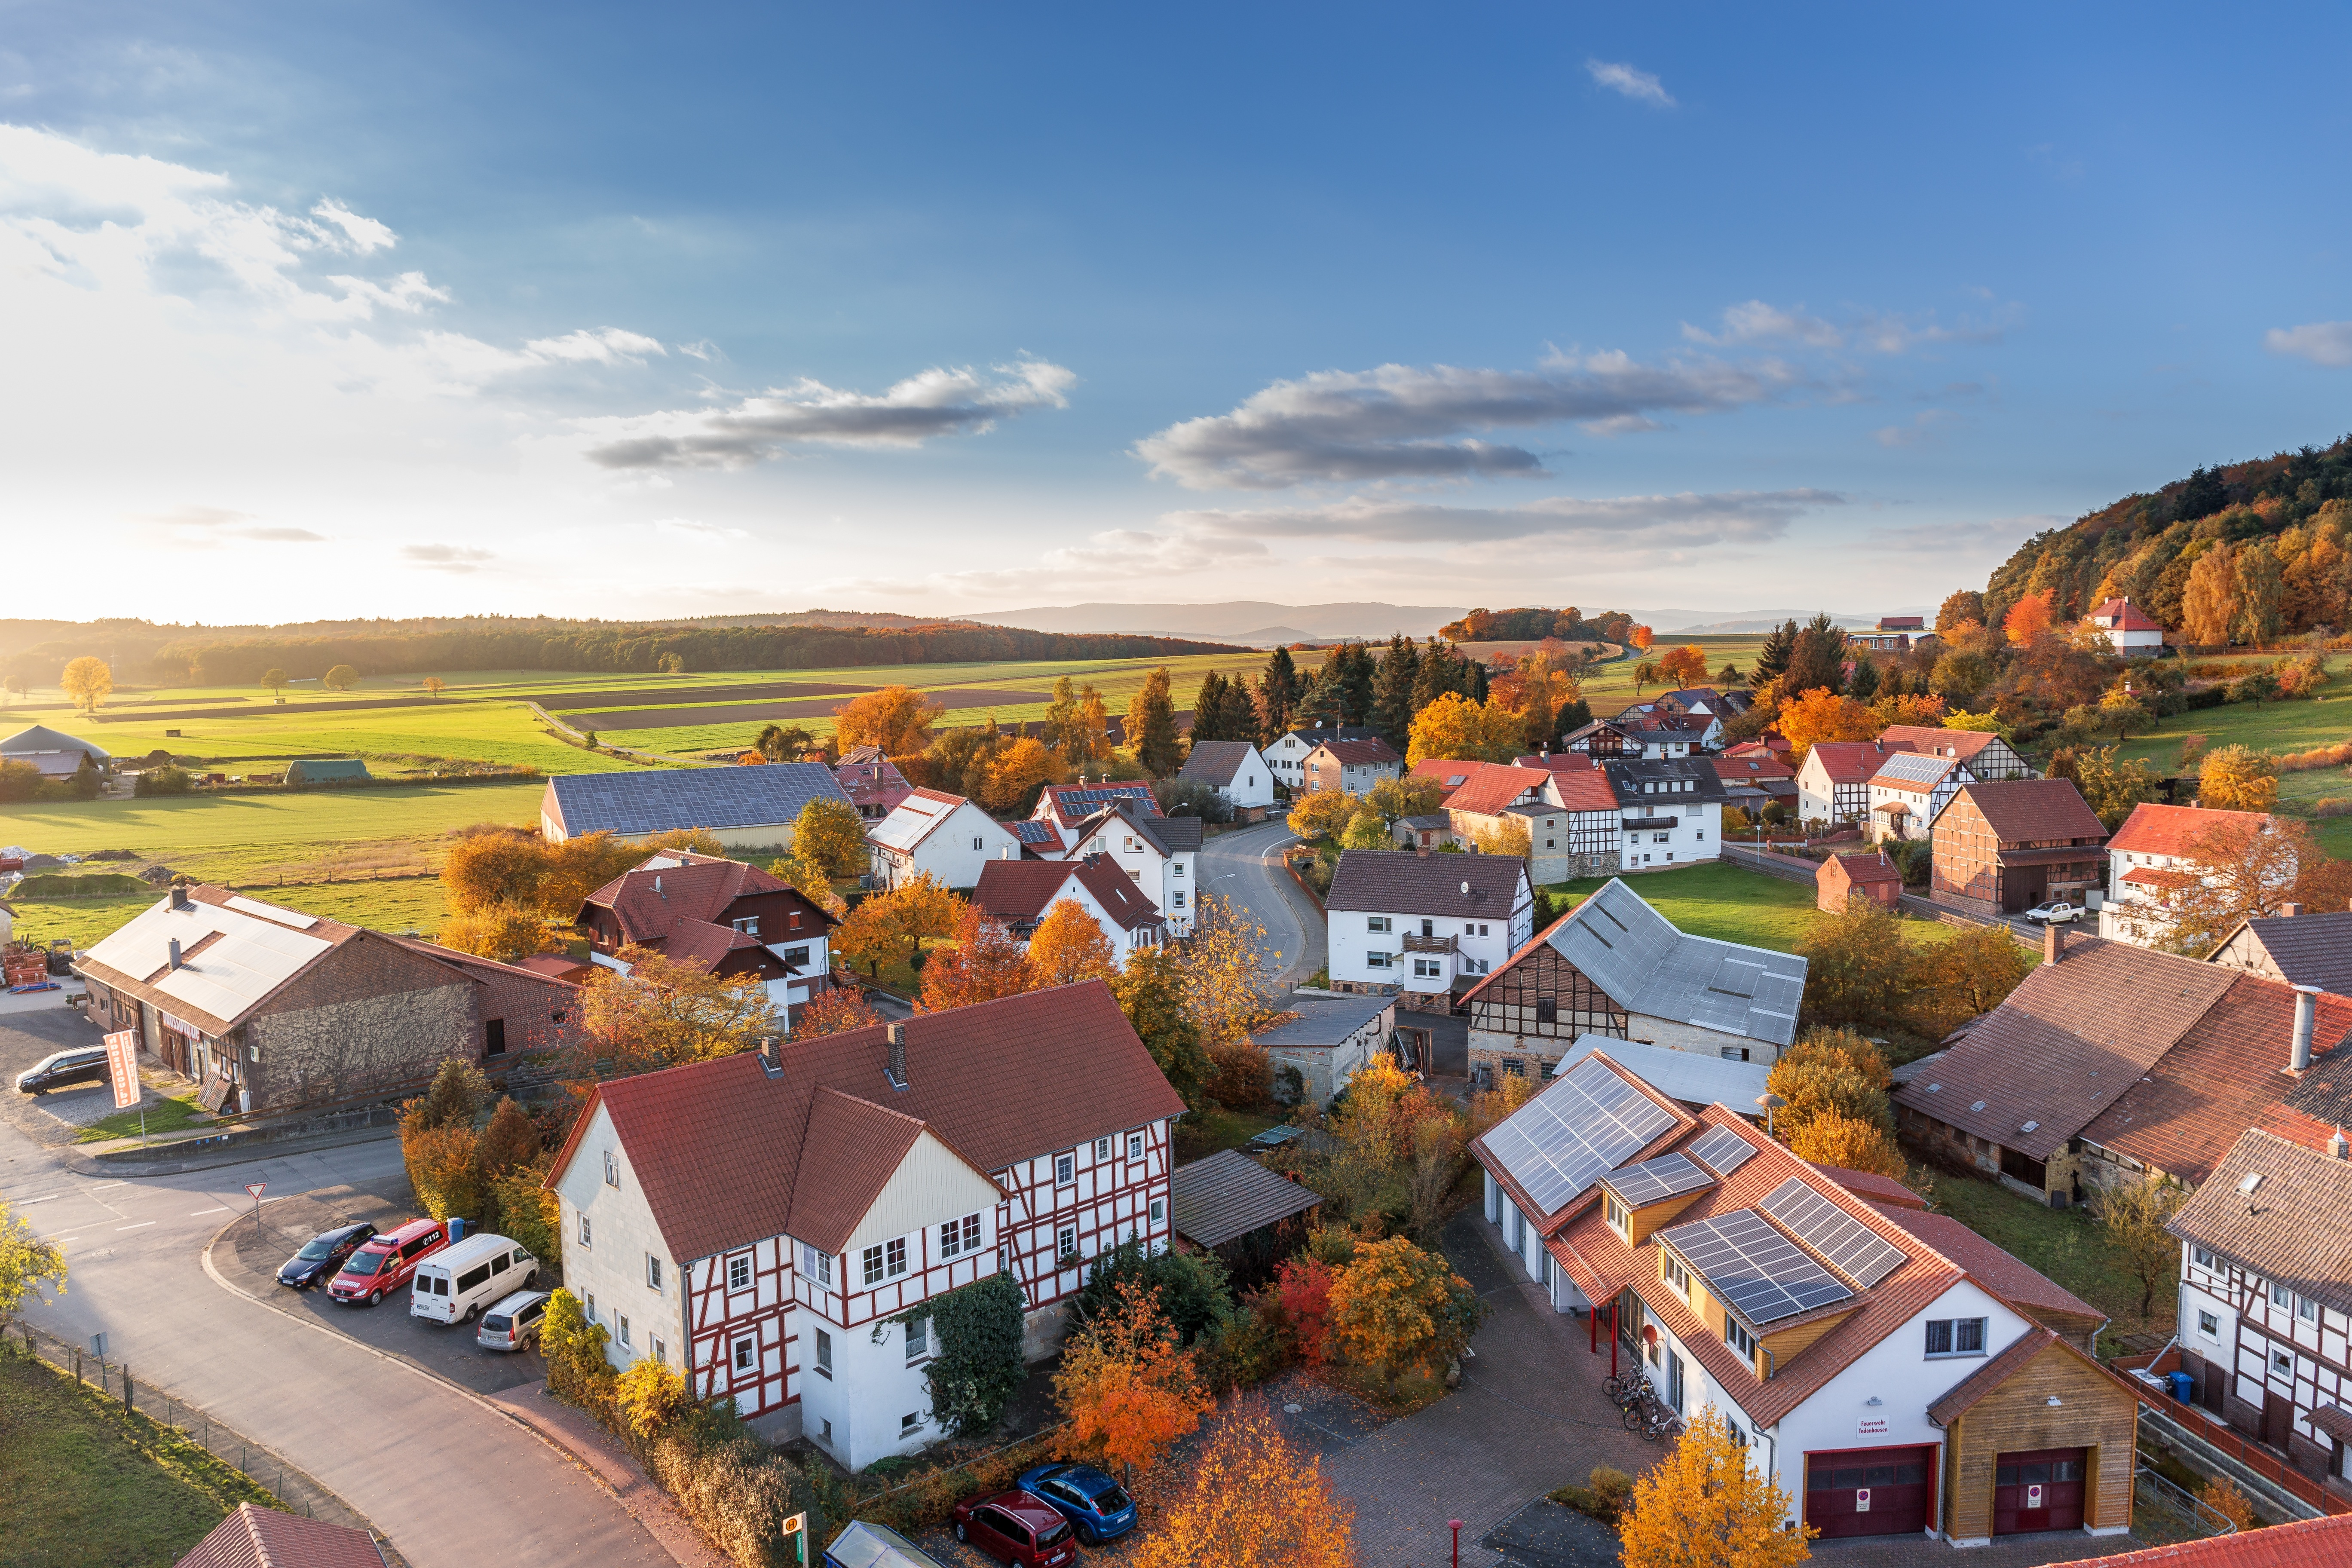 Houses aerial view